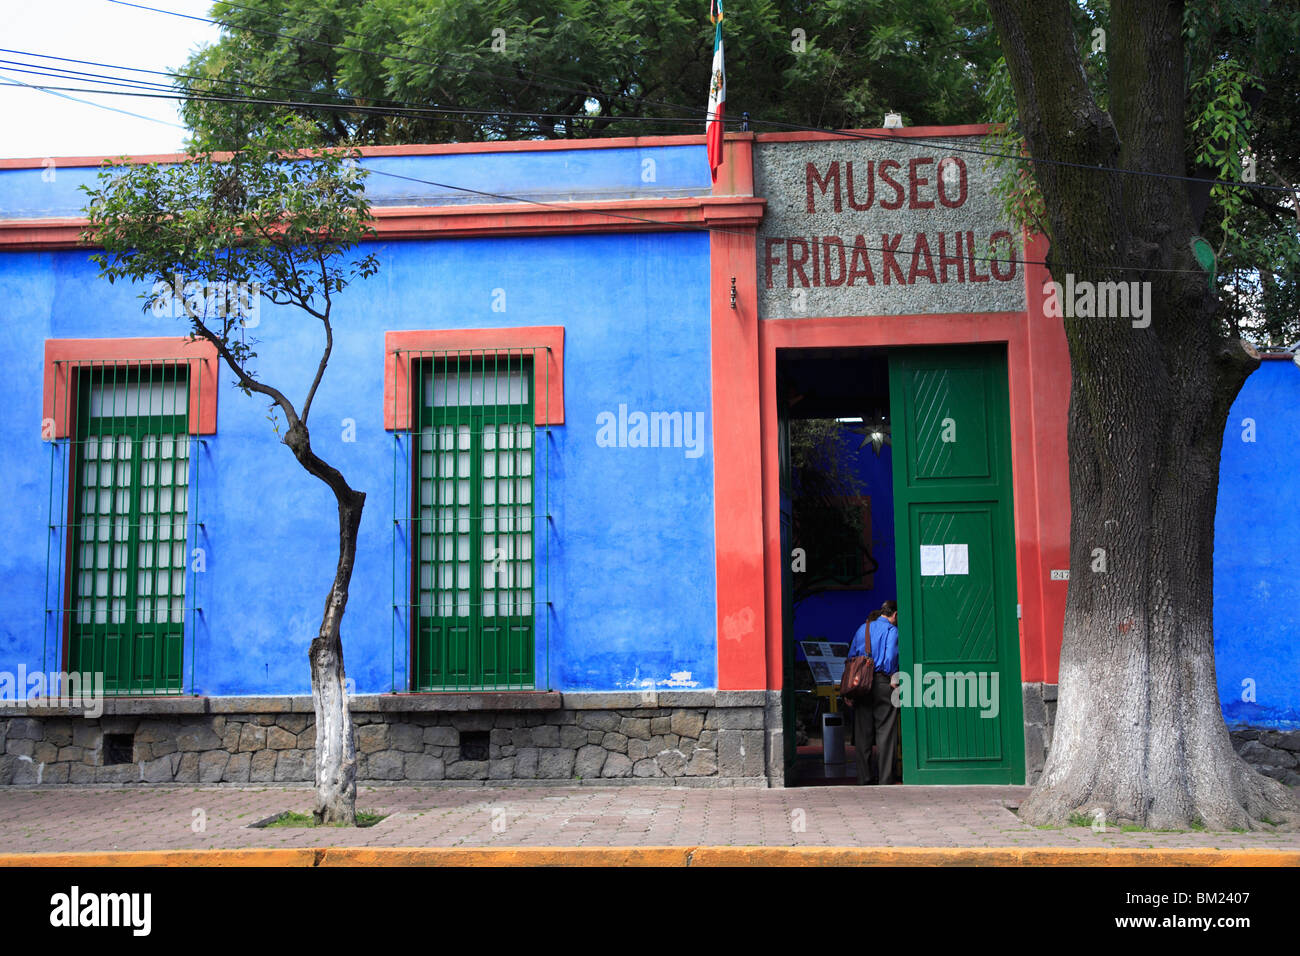 coyoacan single guys So let's explore 10 places to go off the beaten path in mexico city  san angel and coyoacan  2018 at 1:20 am on the reality of older men dating young women .